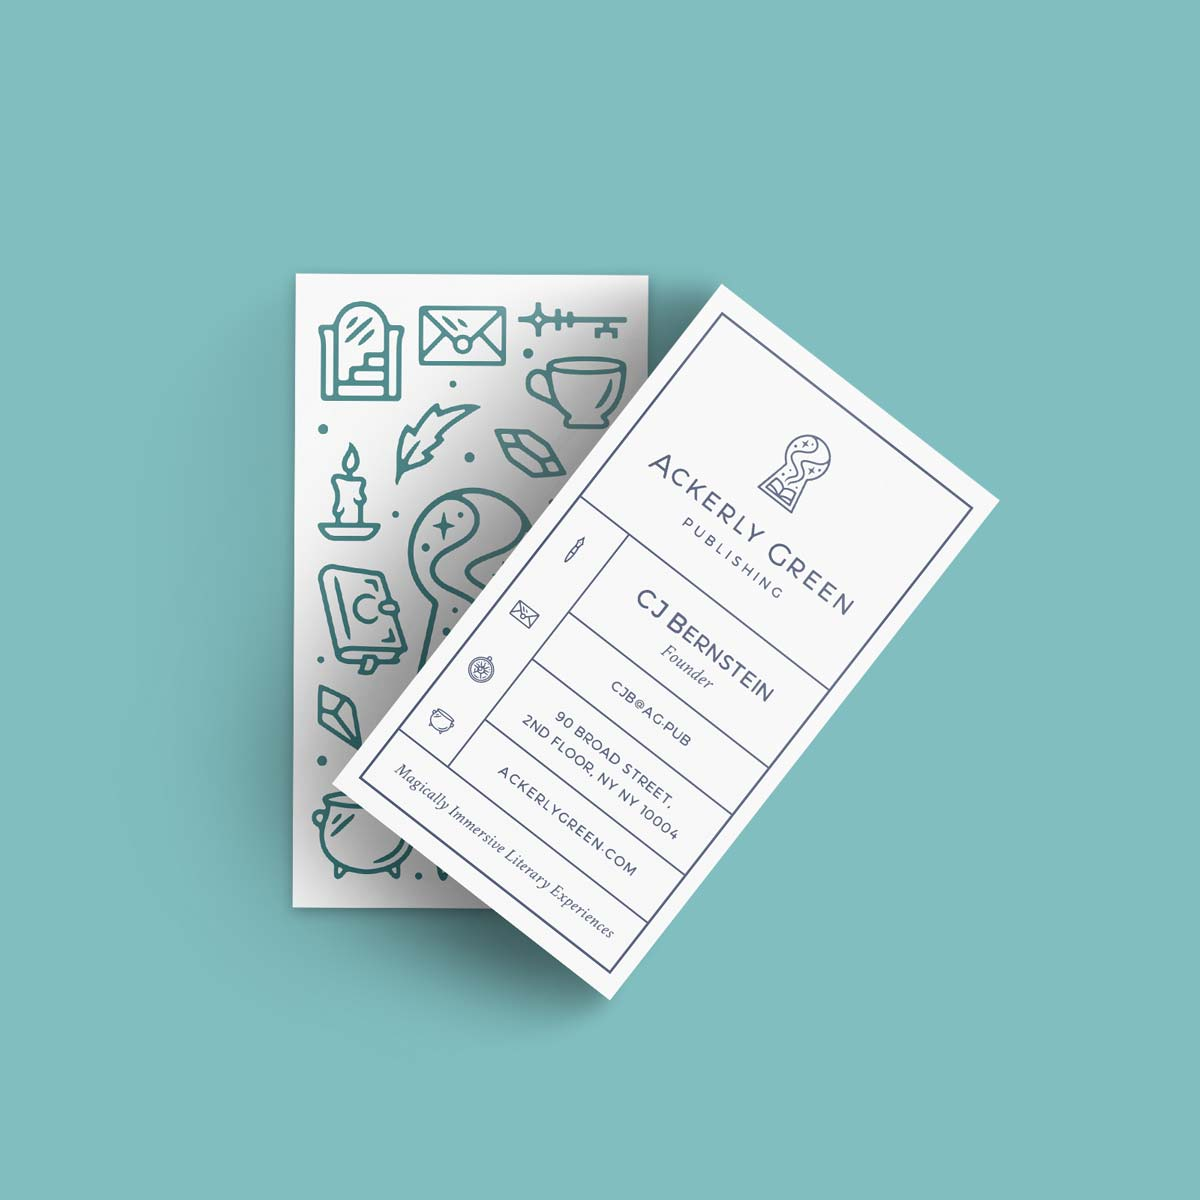 Graphic Design for Ackerly Green Publishing: Business Card